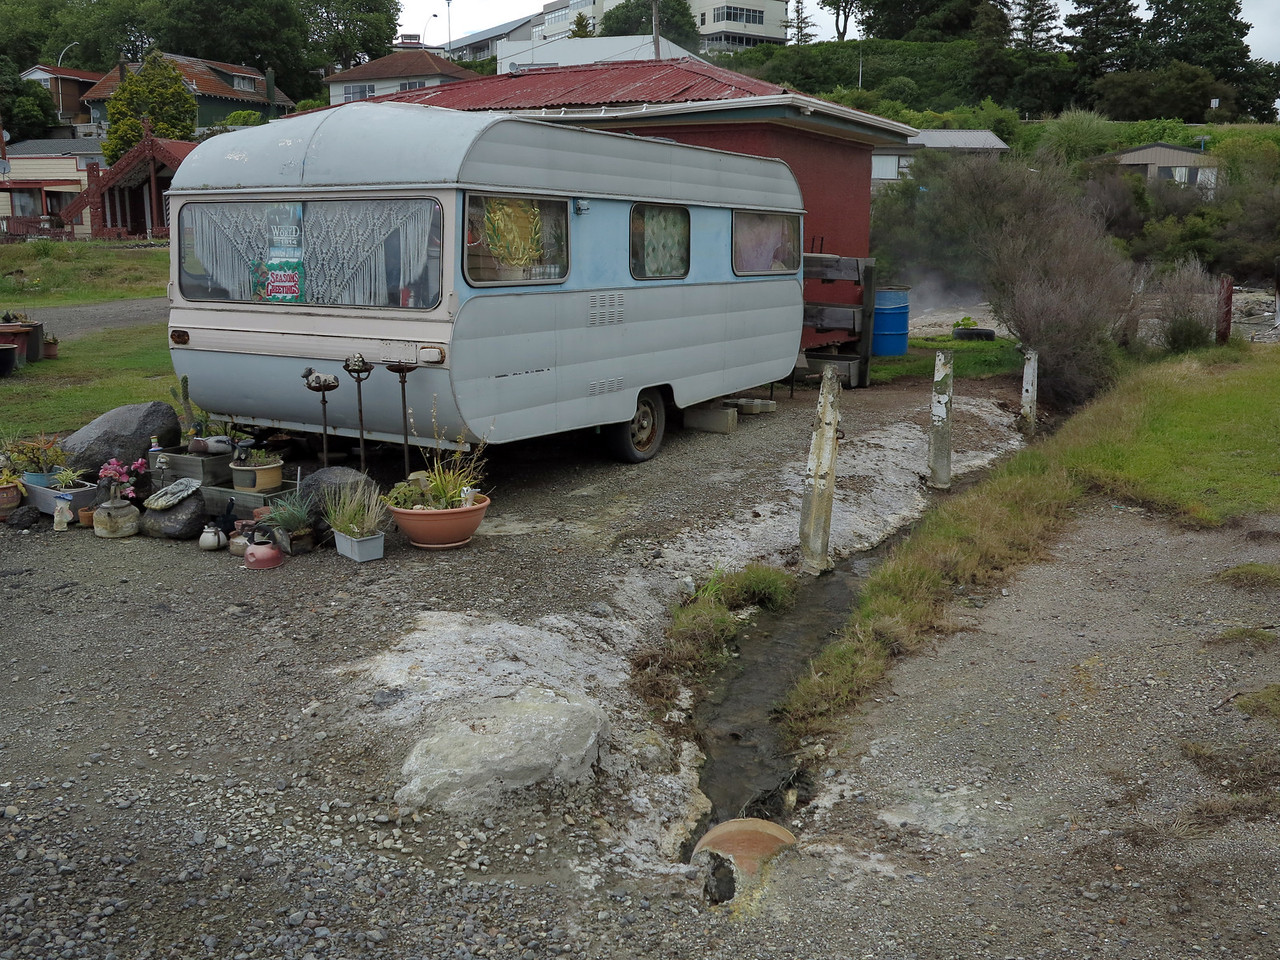 Caravan near St Faiths Church, Rotorua